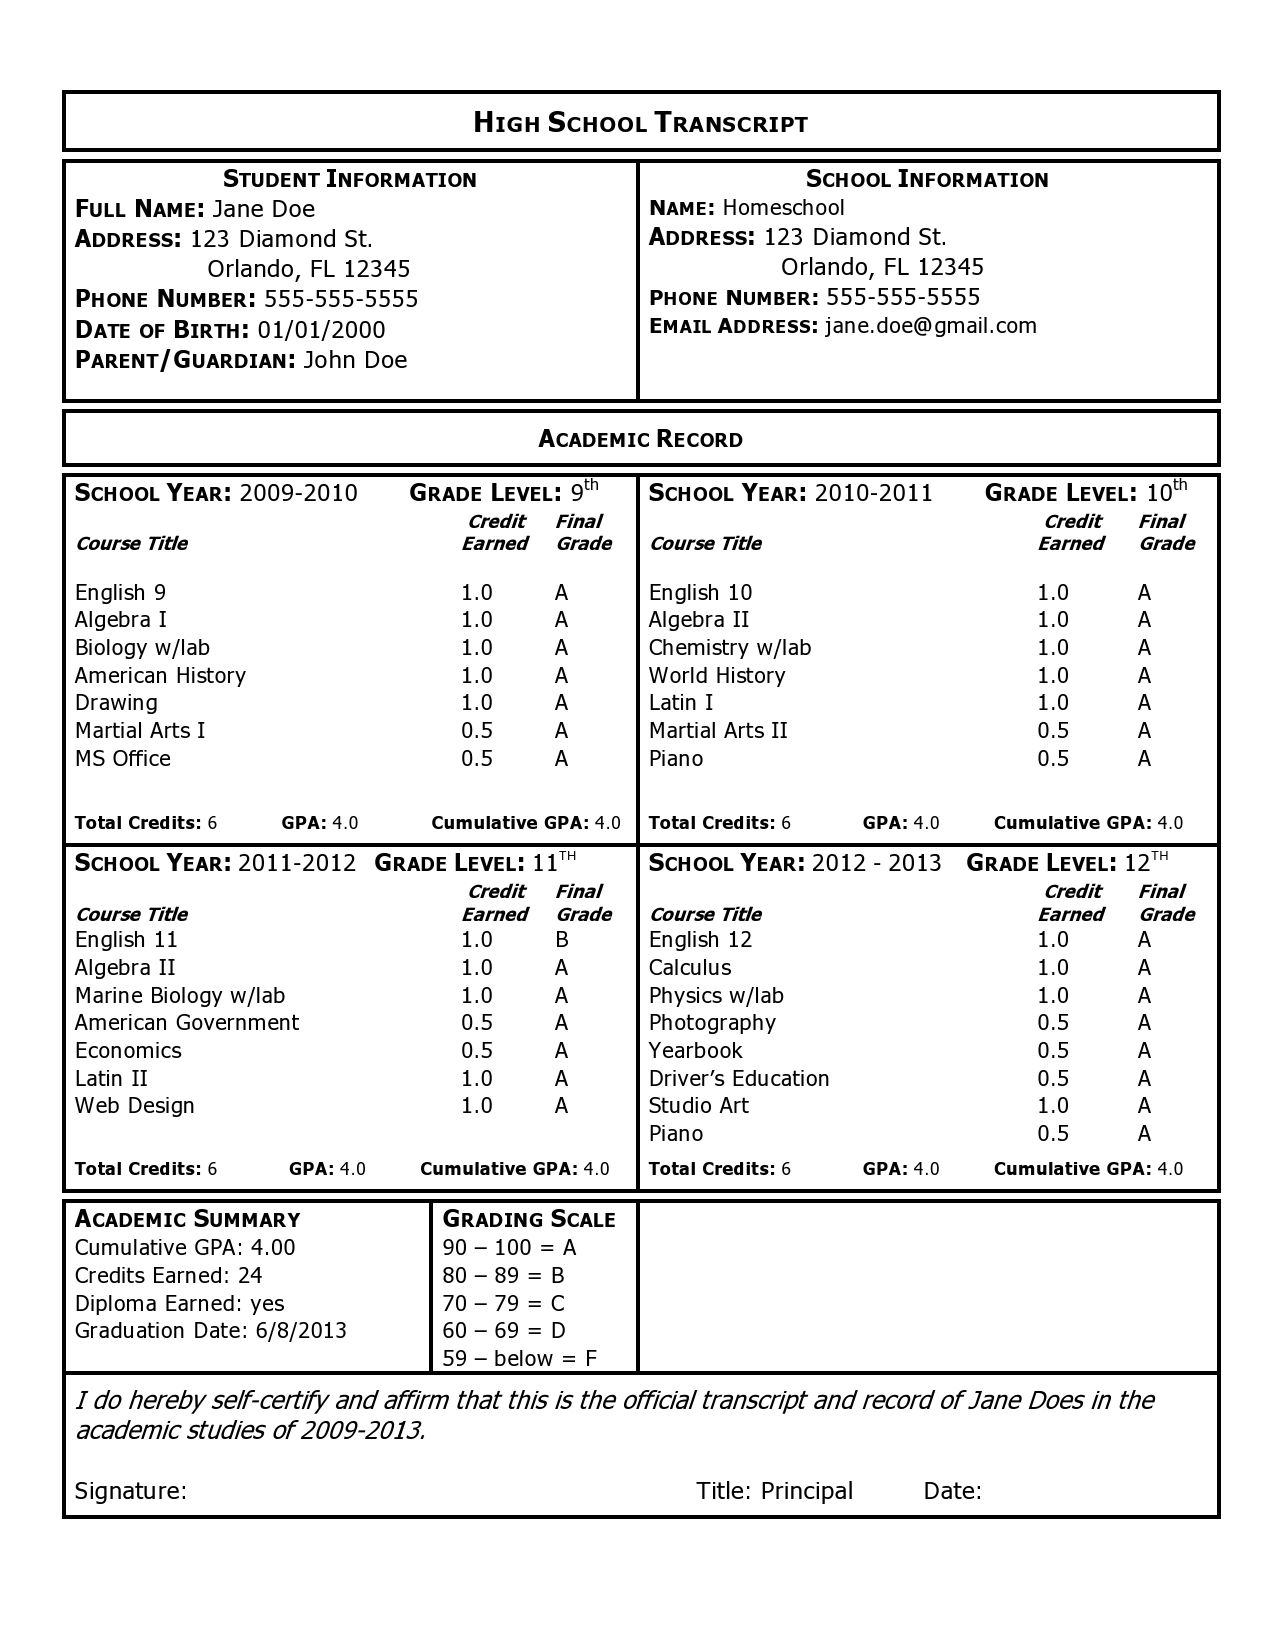 High School Transcript Template Texas